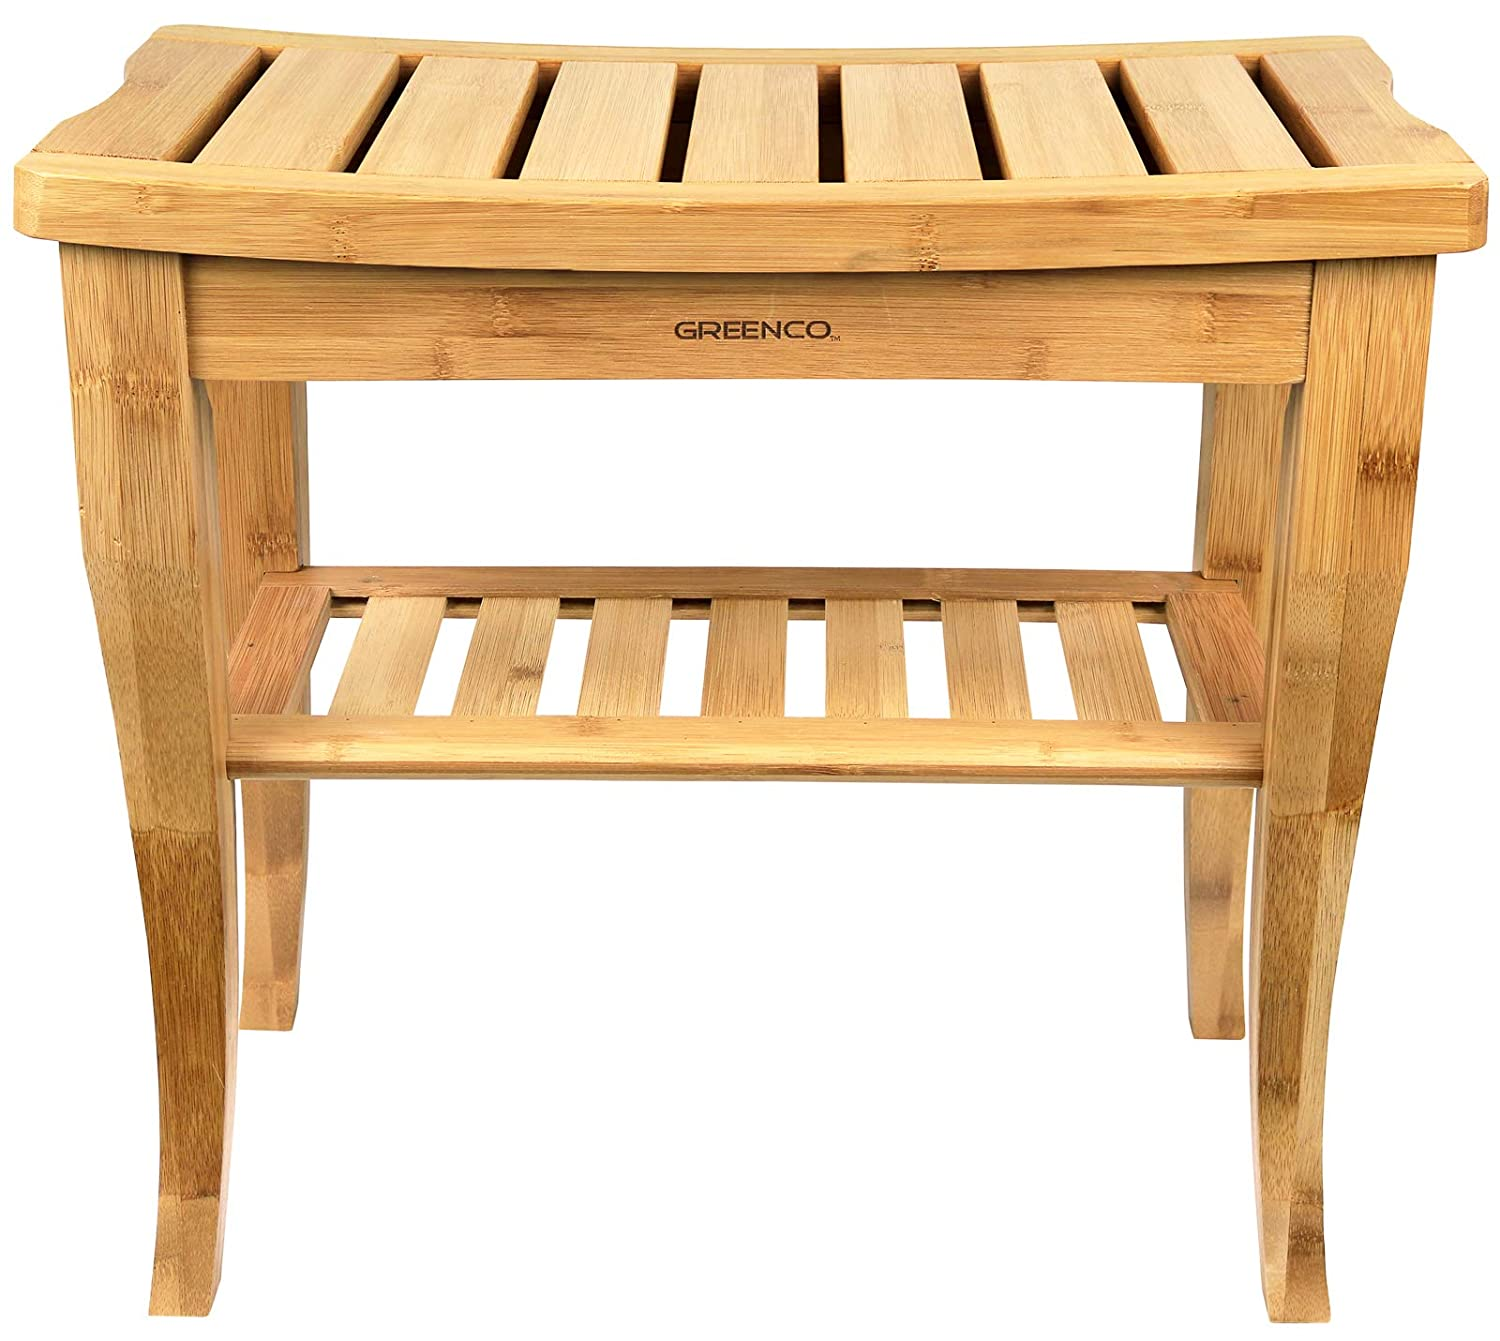 Wondrous Details About Greenco Waterproof Bamboo Shower Bench With Shelf Wooden Spa Bath Stool Indoor Pdpeps Interior Chair Design Pdpepsorg